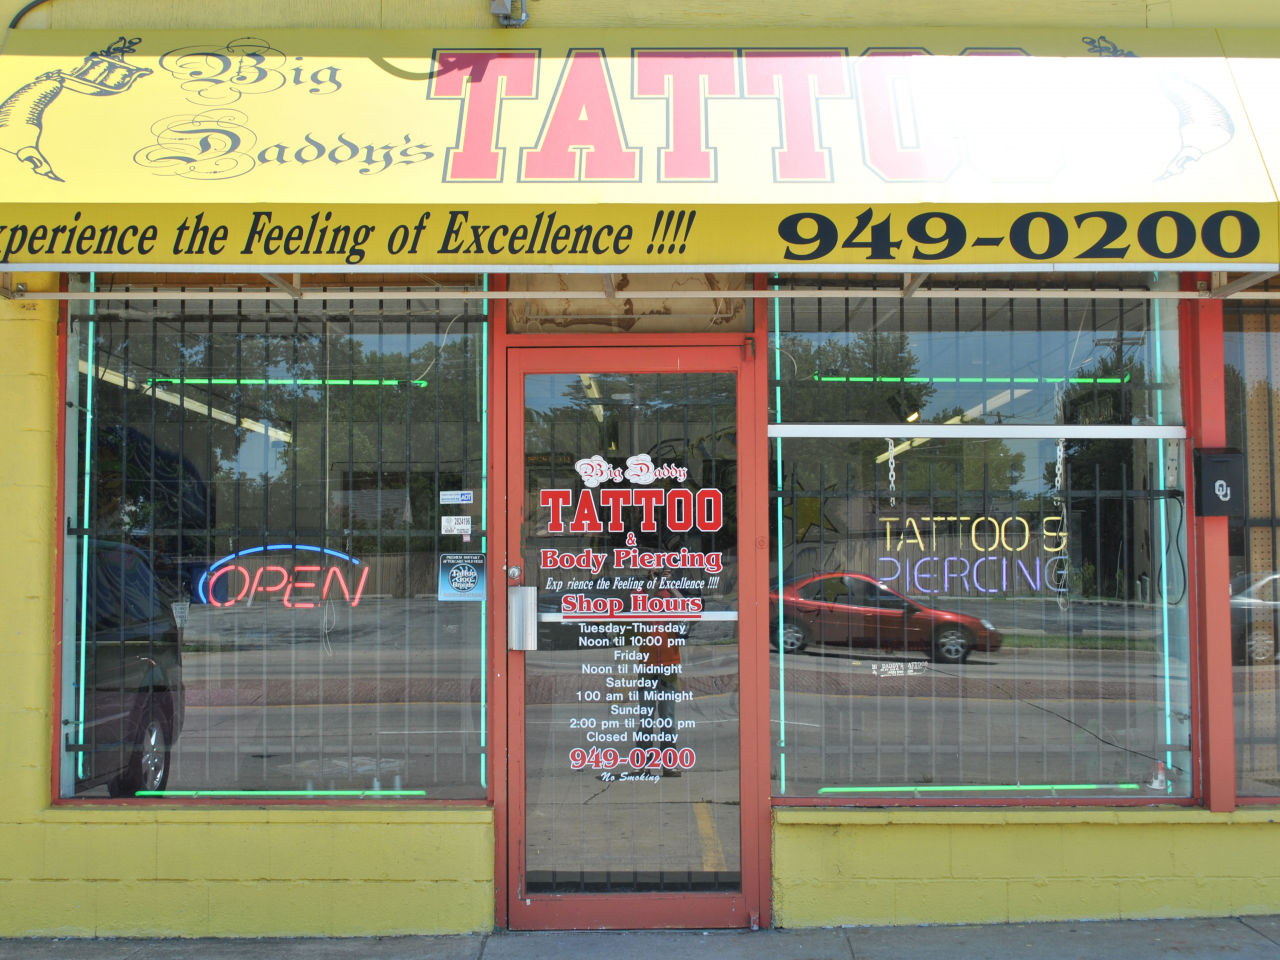 Big Daddys Tattoos Provides More Information On Our Tattoo Artistry In Oklahoma City Oklahoma